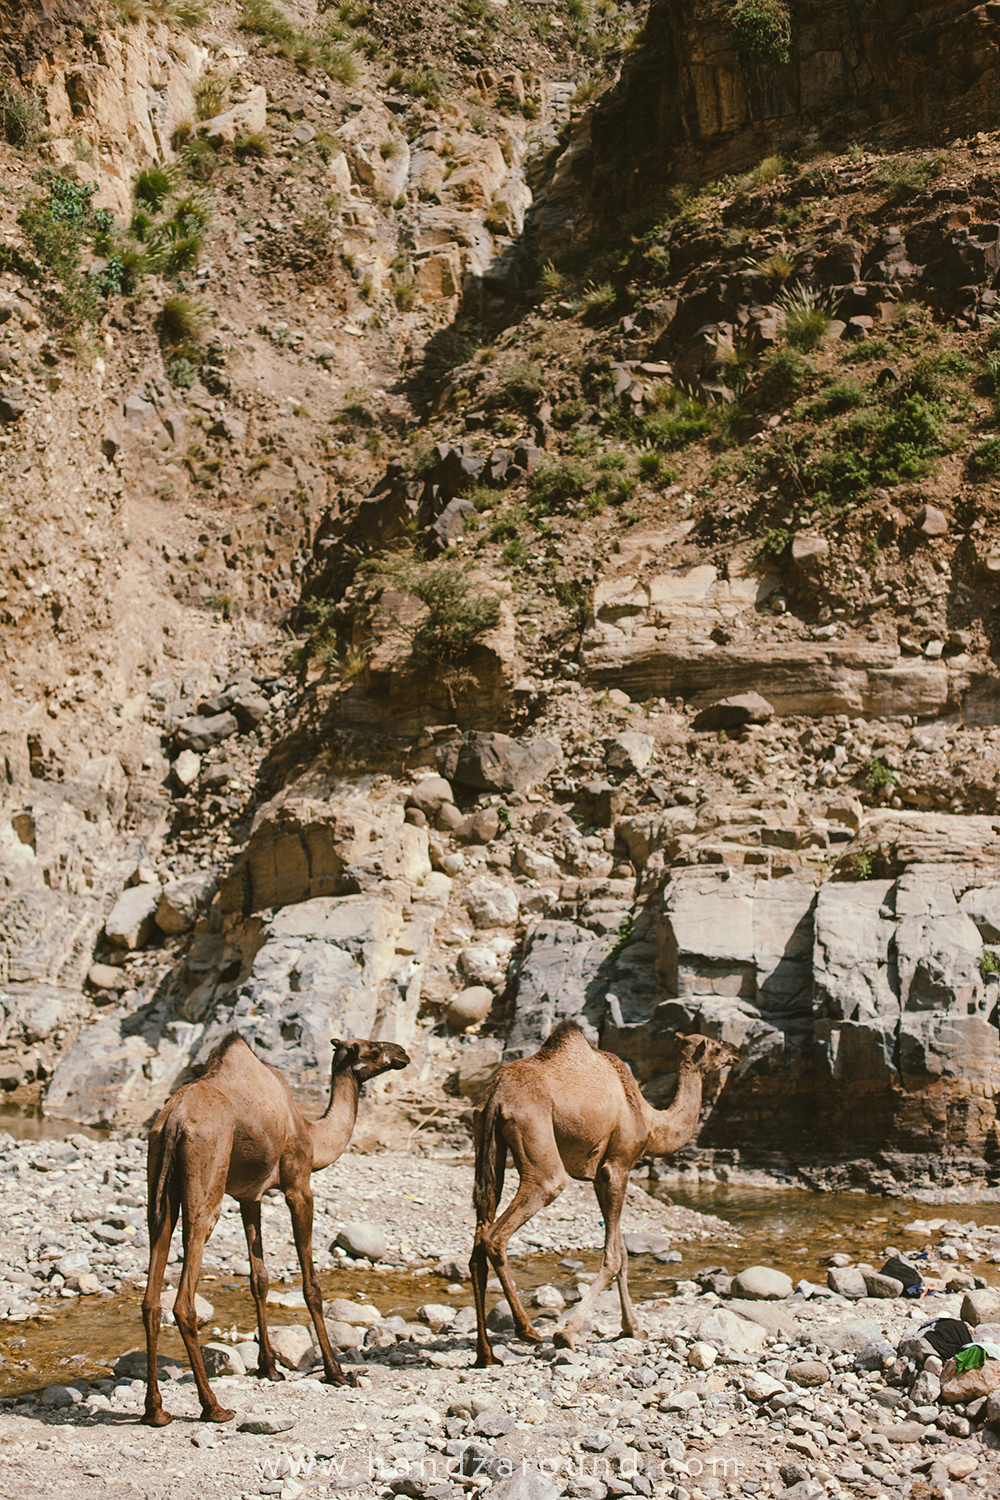 Camels came for a drink